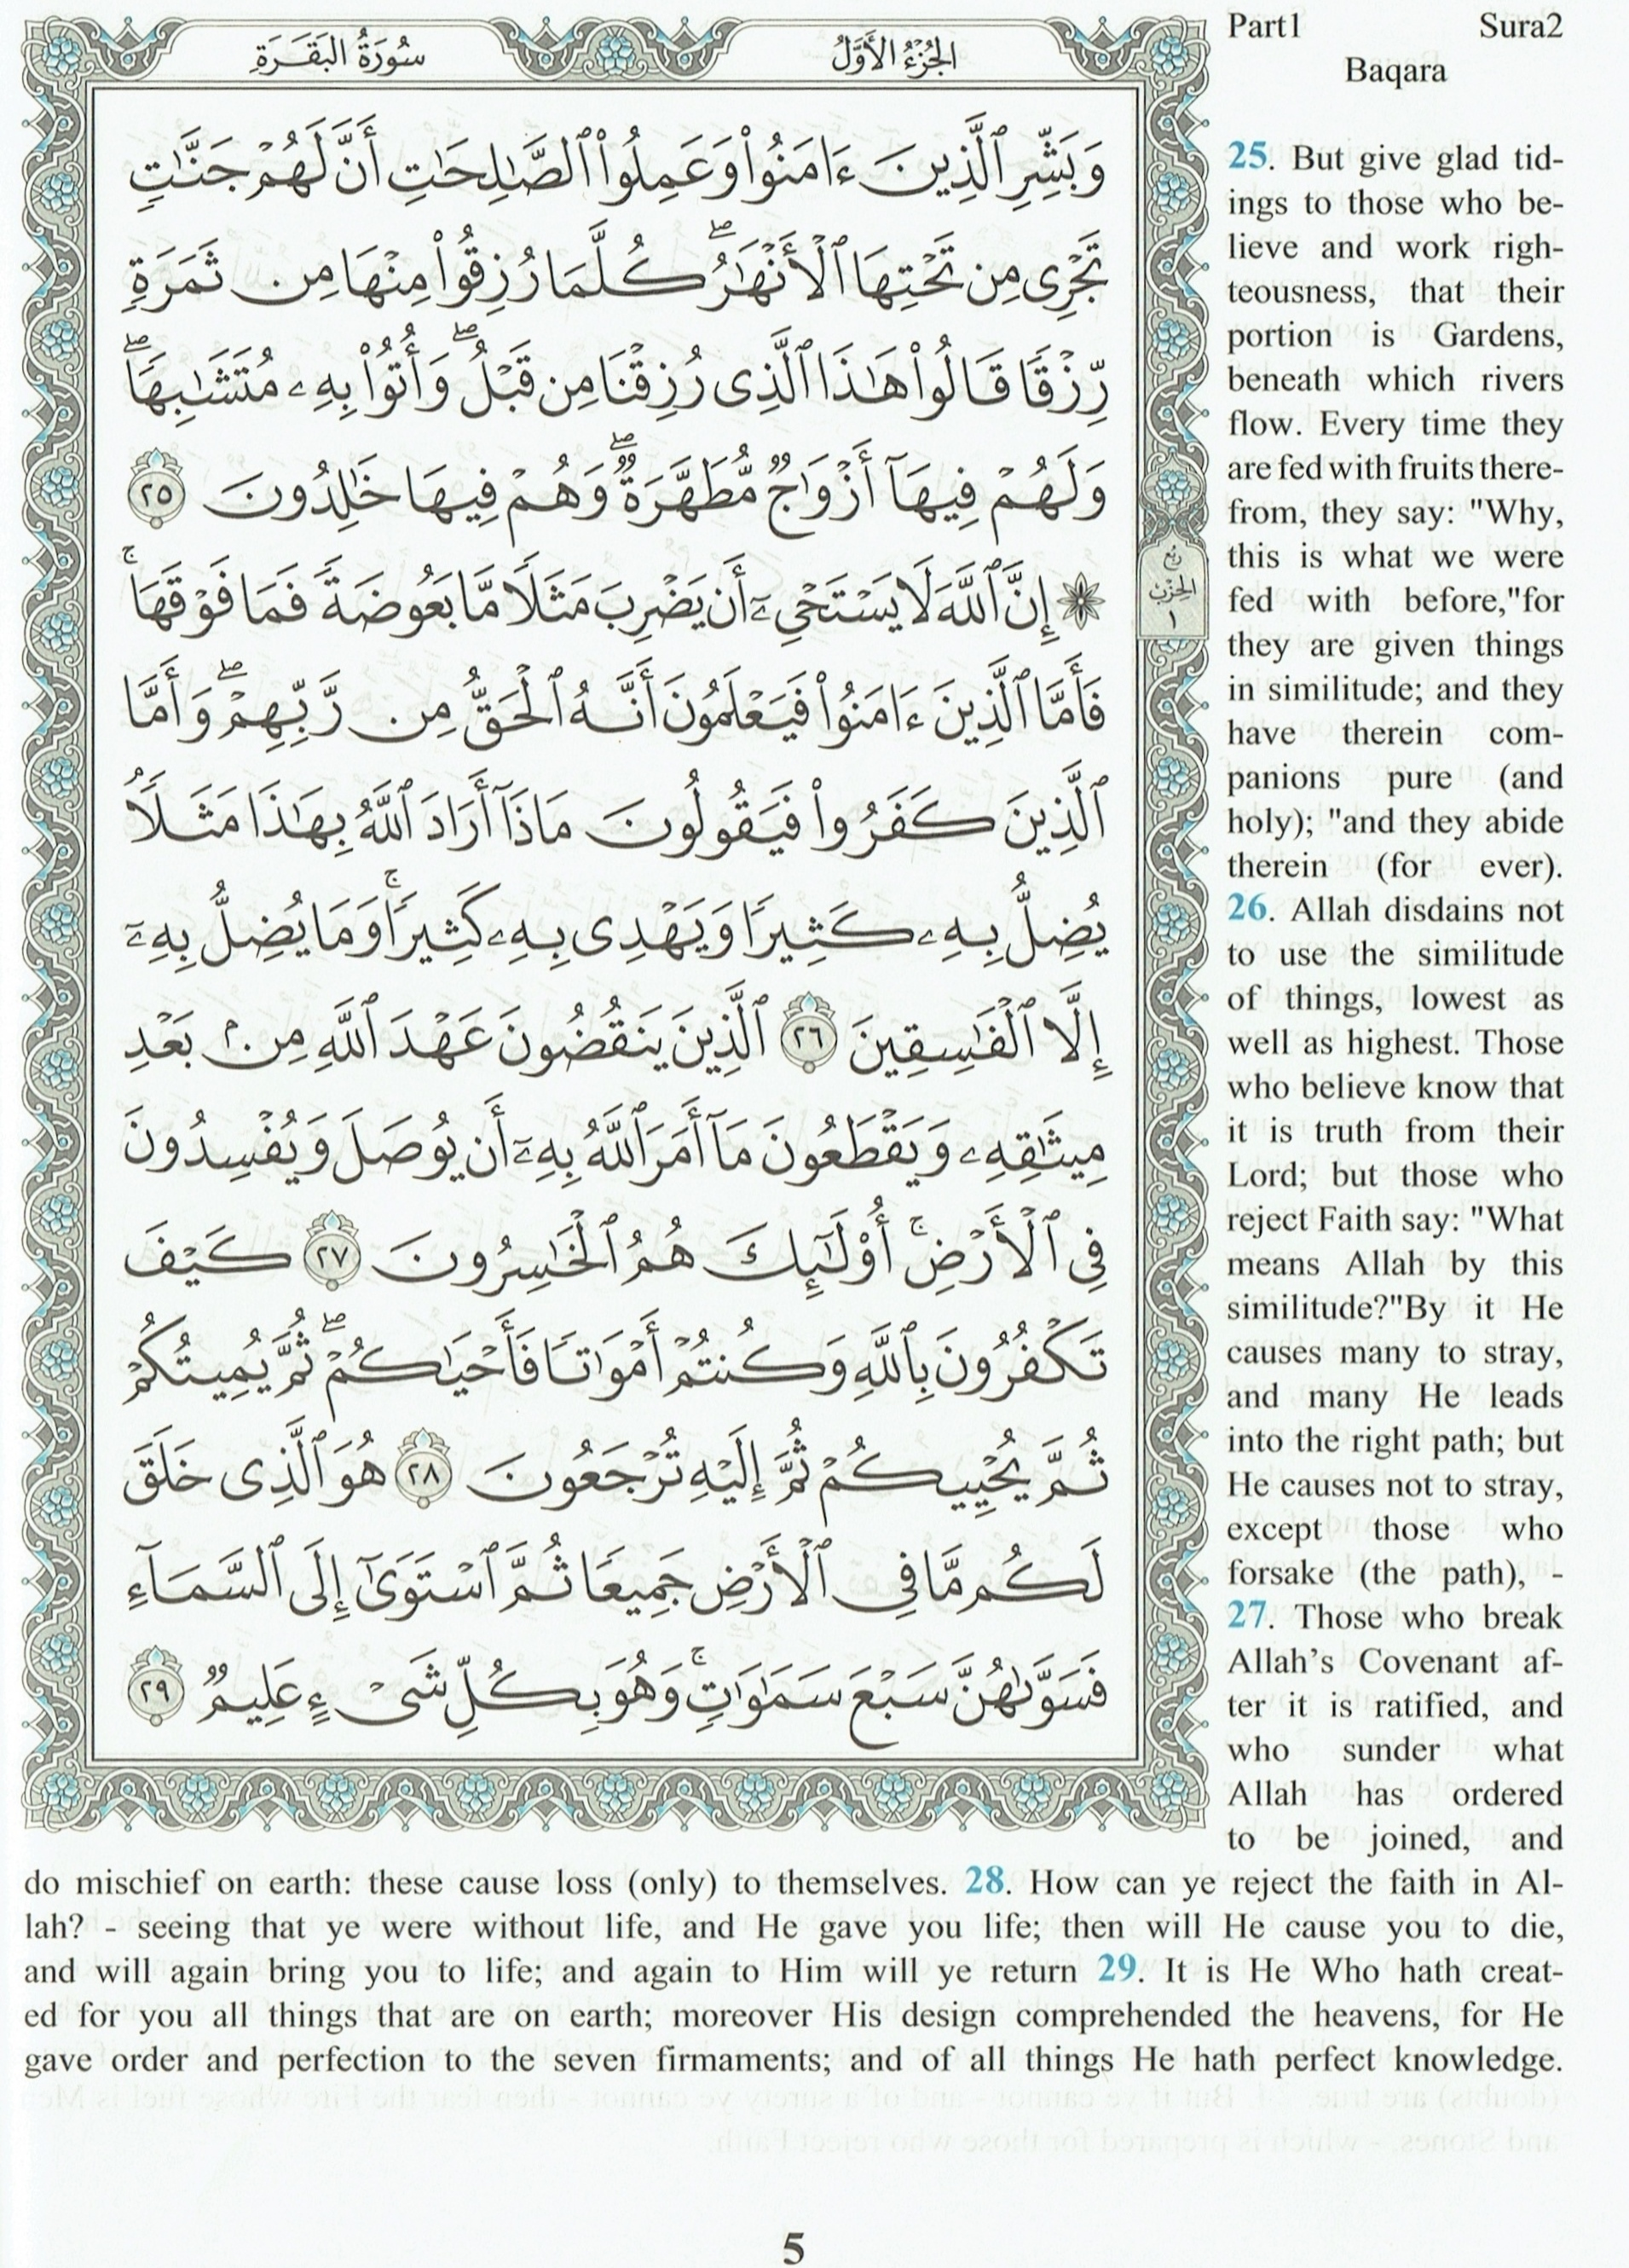 the-noble-quran-english-translation-of-the-meanings-and-commentary-5-.jpg